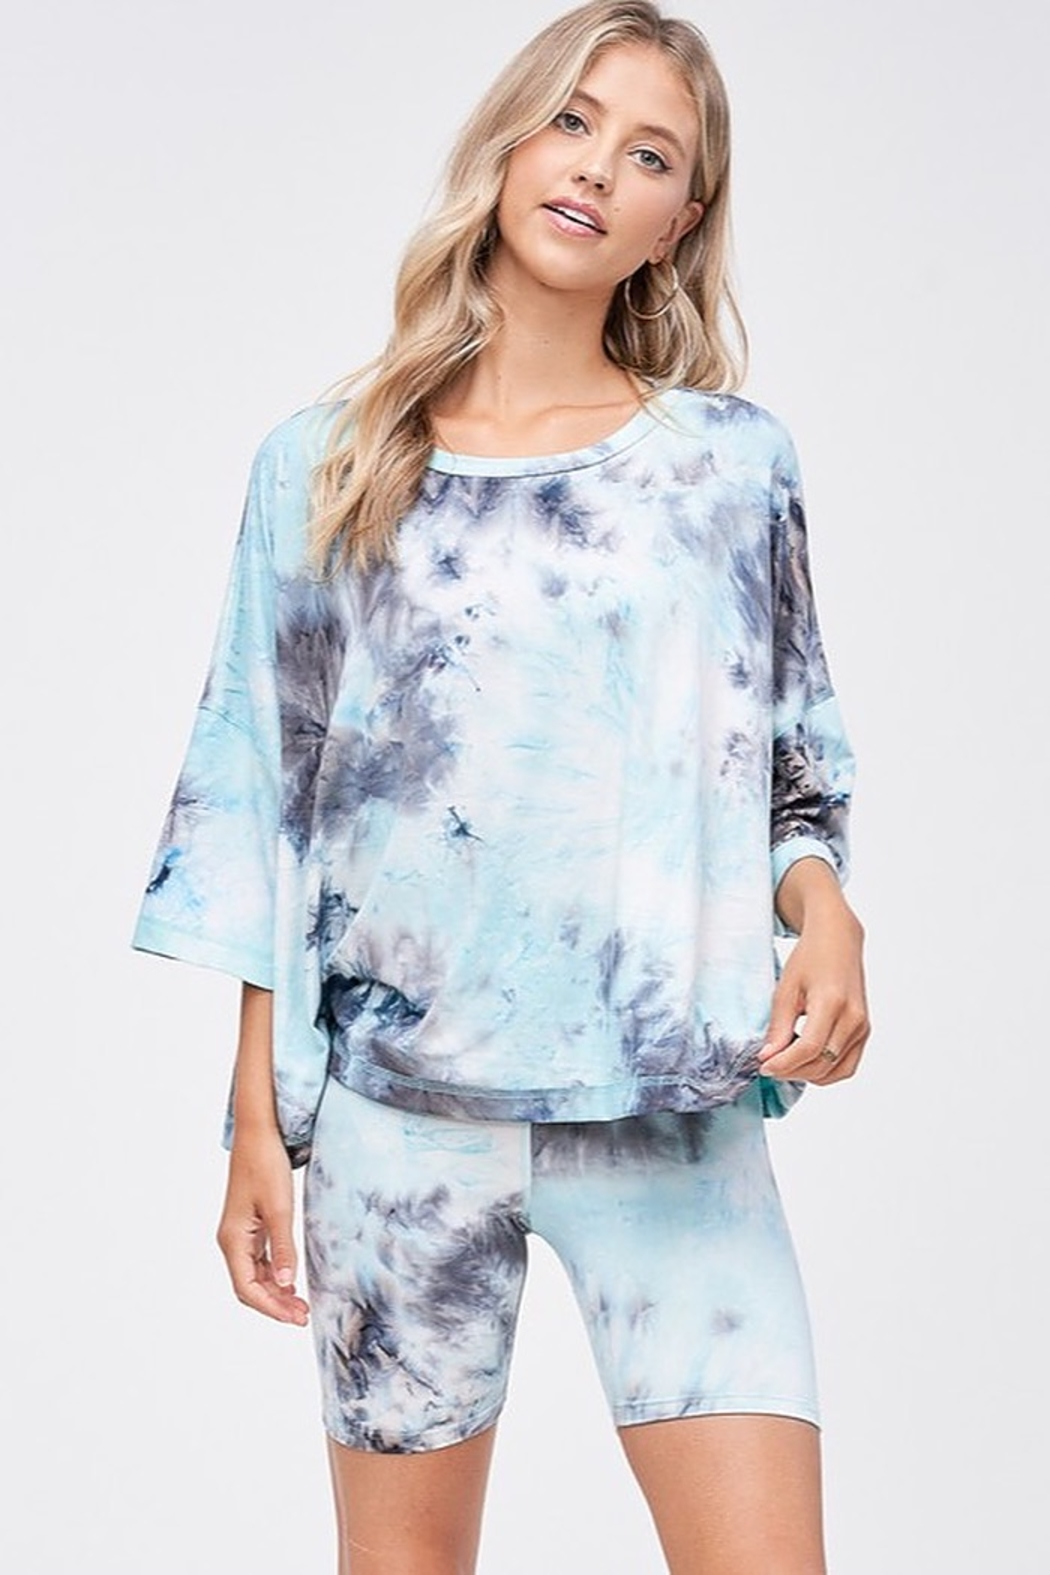 CRIV Sky High Tie Dye Top - Main Image